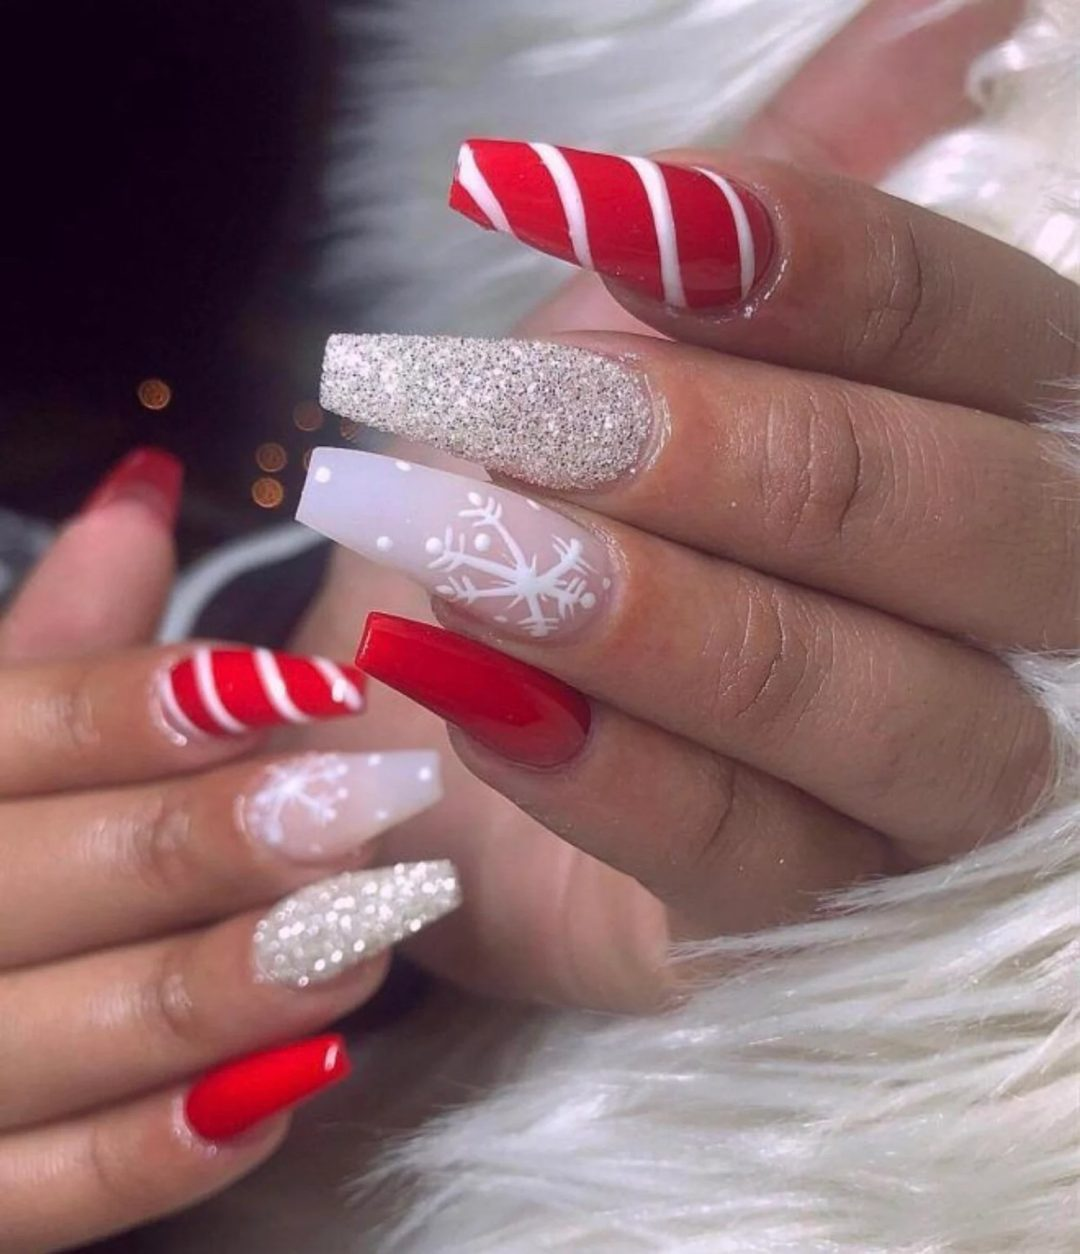 Candycane red and glitter snowflake nails